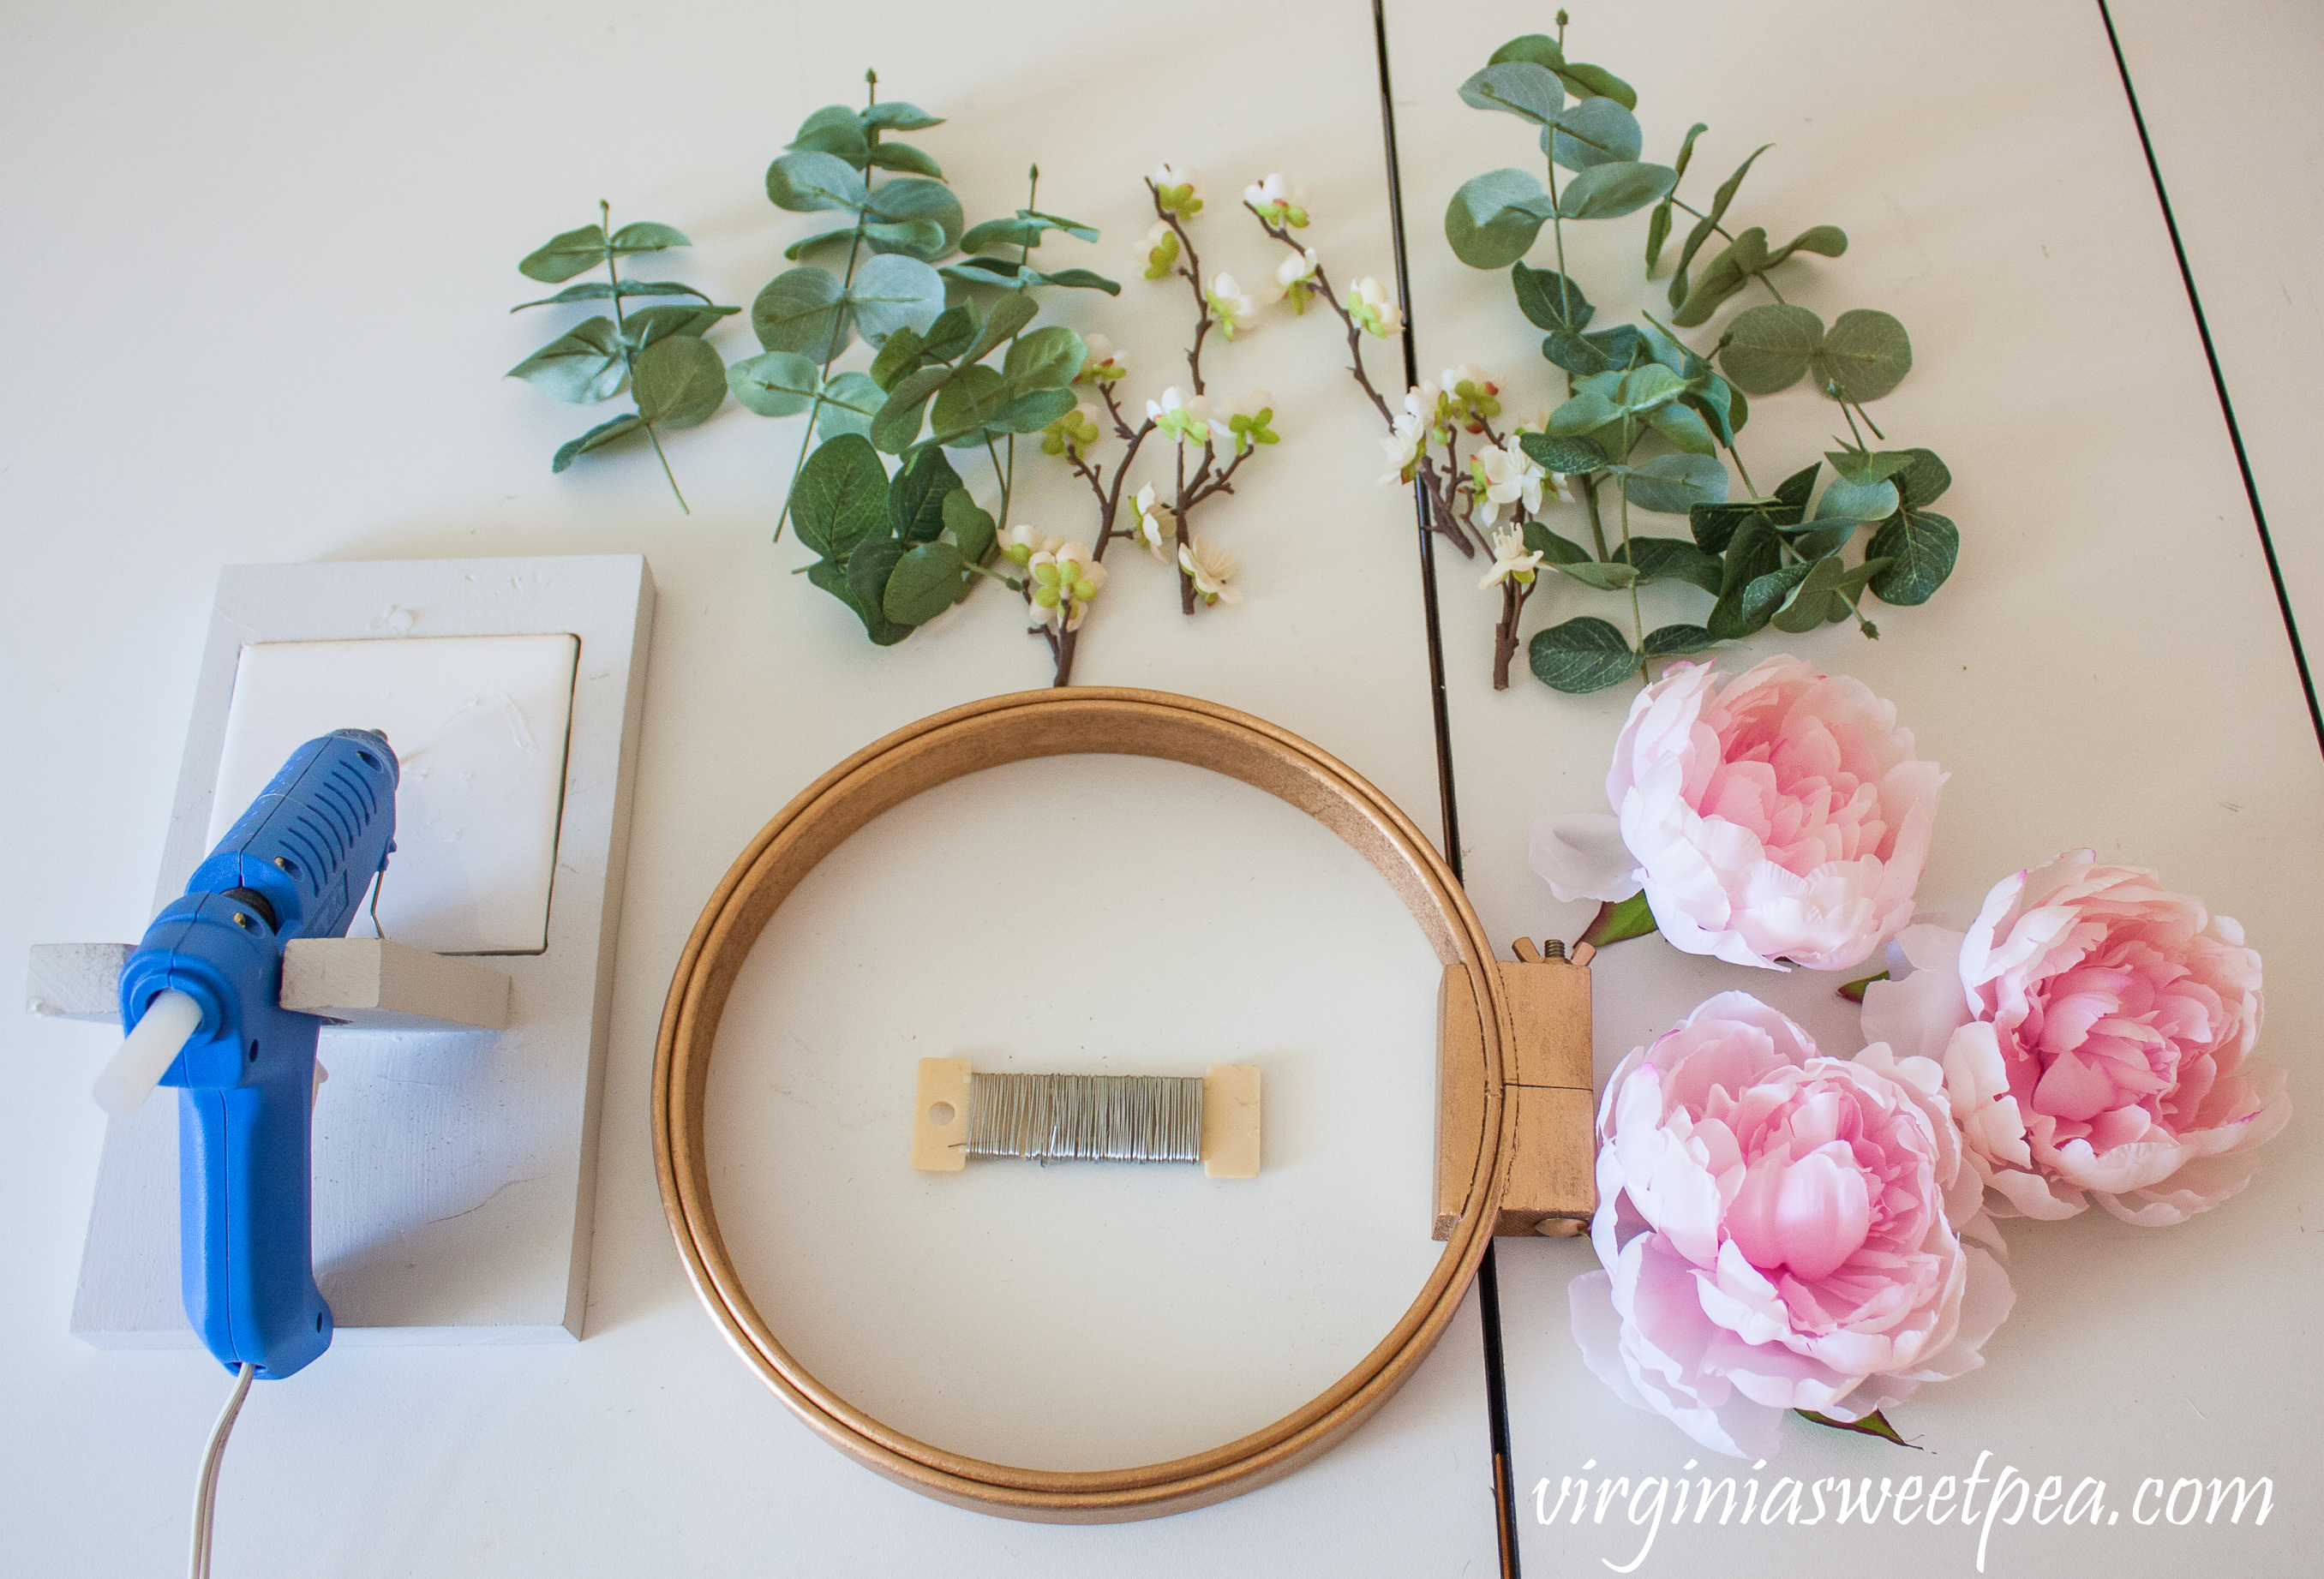 Tutorial to make a DIY spring floral embroidery hoop wreath